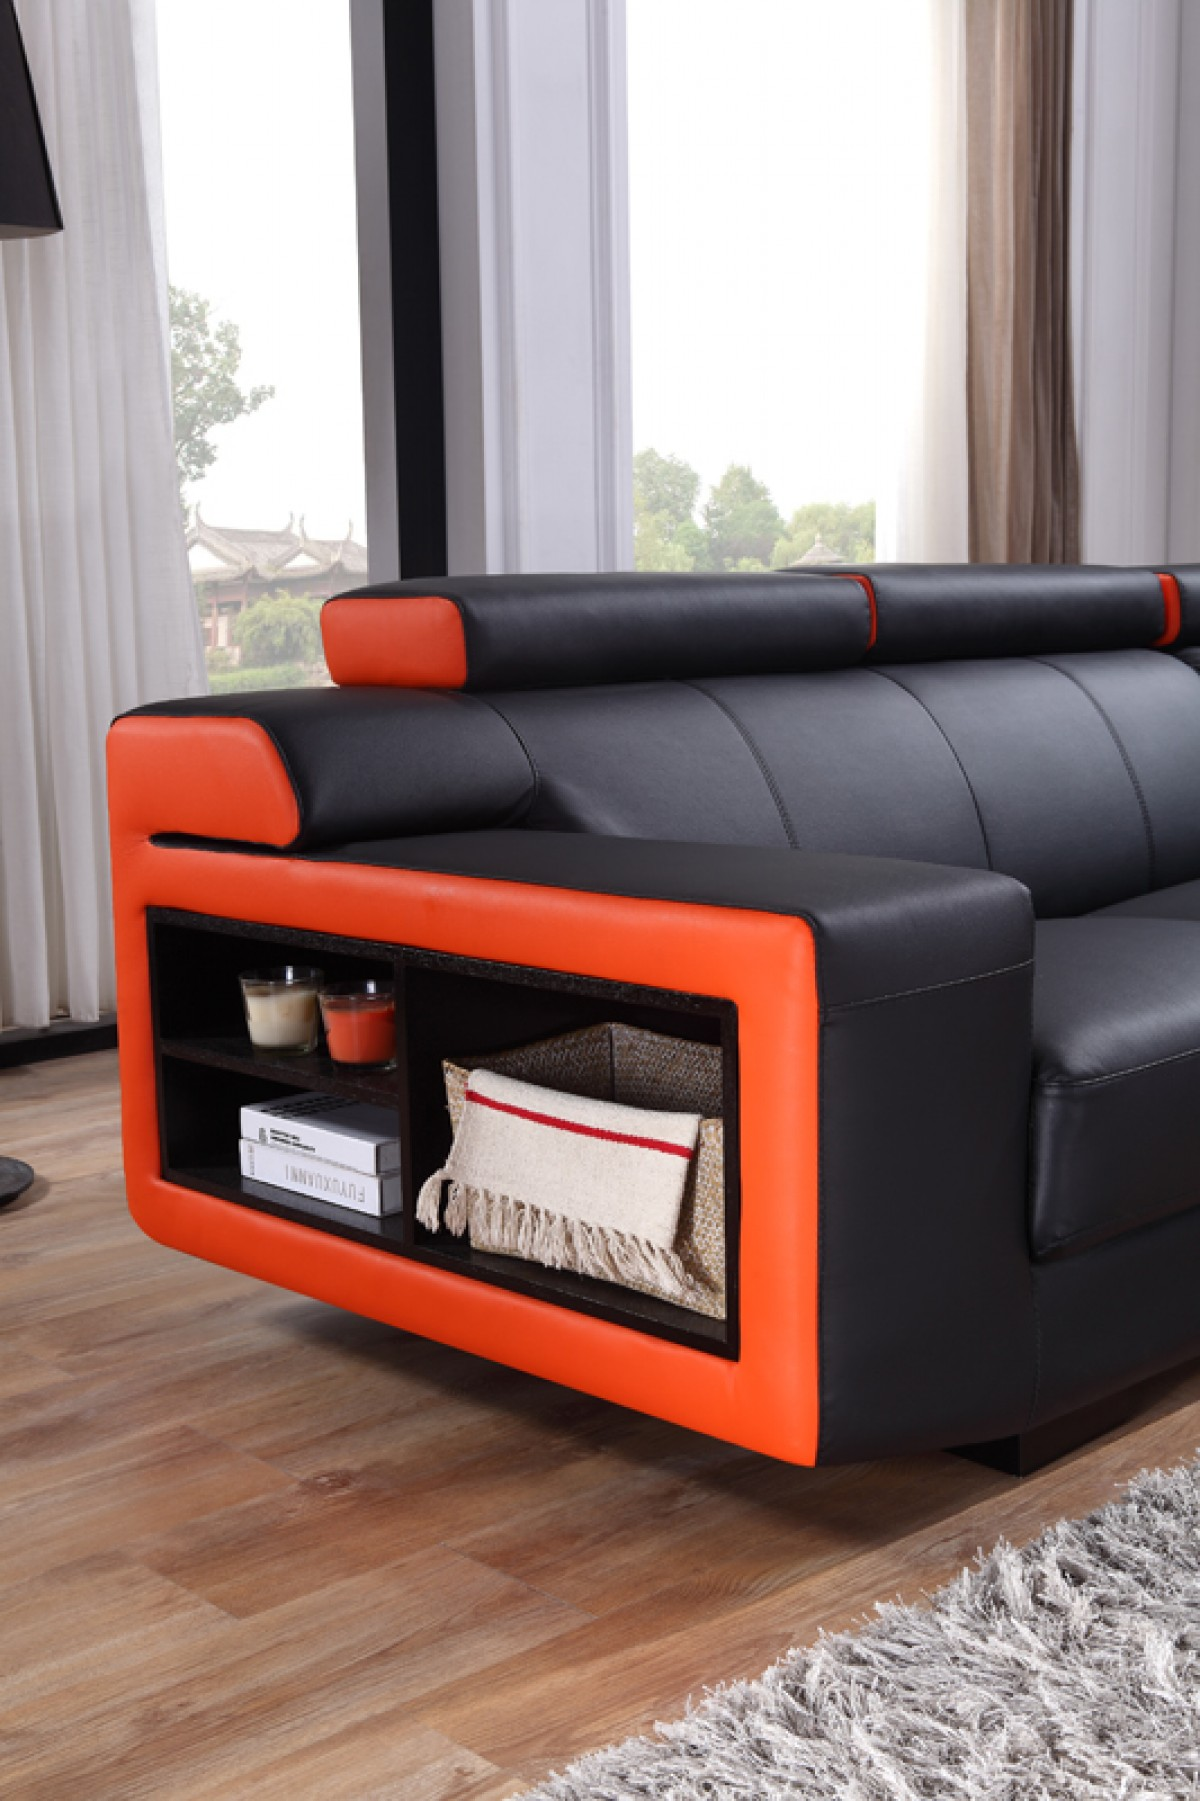 of for full sets ideas sectional orange sofa microfiber sale striking furniture orangetional bedroomla photos with room living sofas burnt center chaise size contemporary